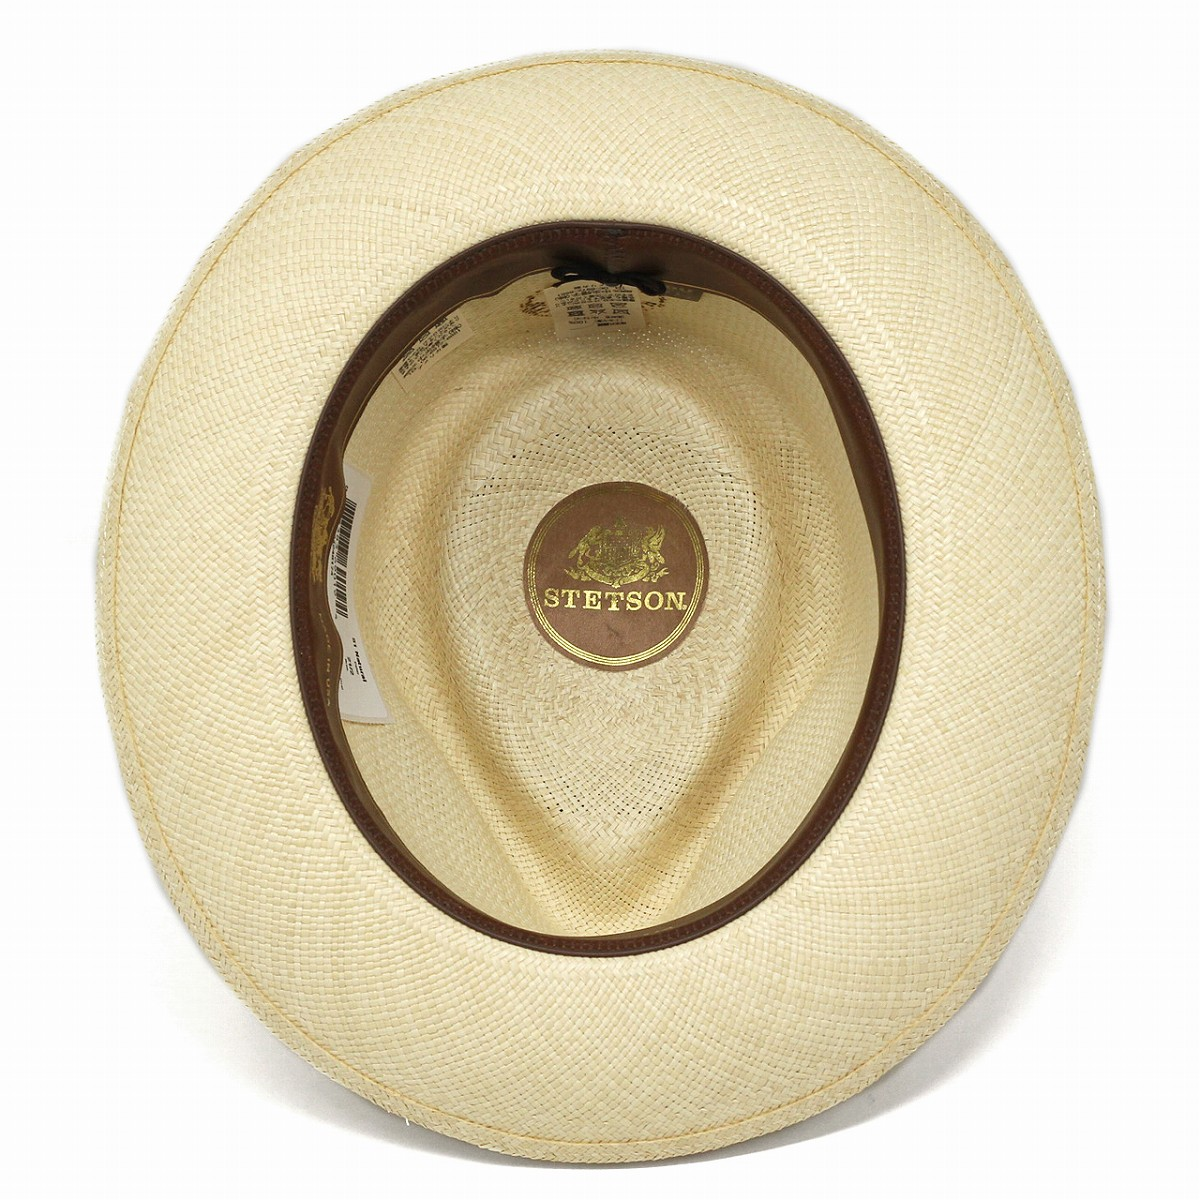 3a392d95c Panama hat STETSON rose embroidery ribbon overseas brand Stetson straw hat  men hat soft felt hat hat straw hat 58cm 60cm stetson hat / natural [panama  ...